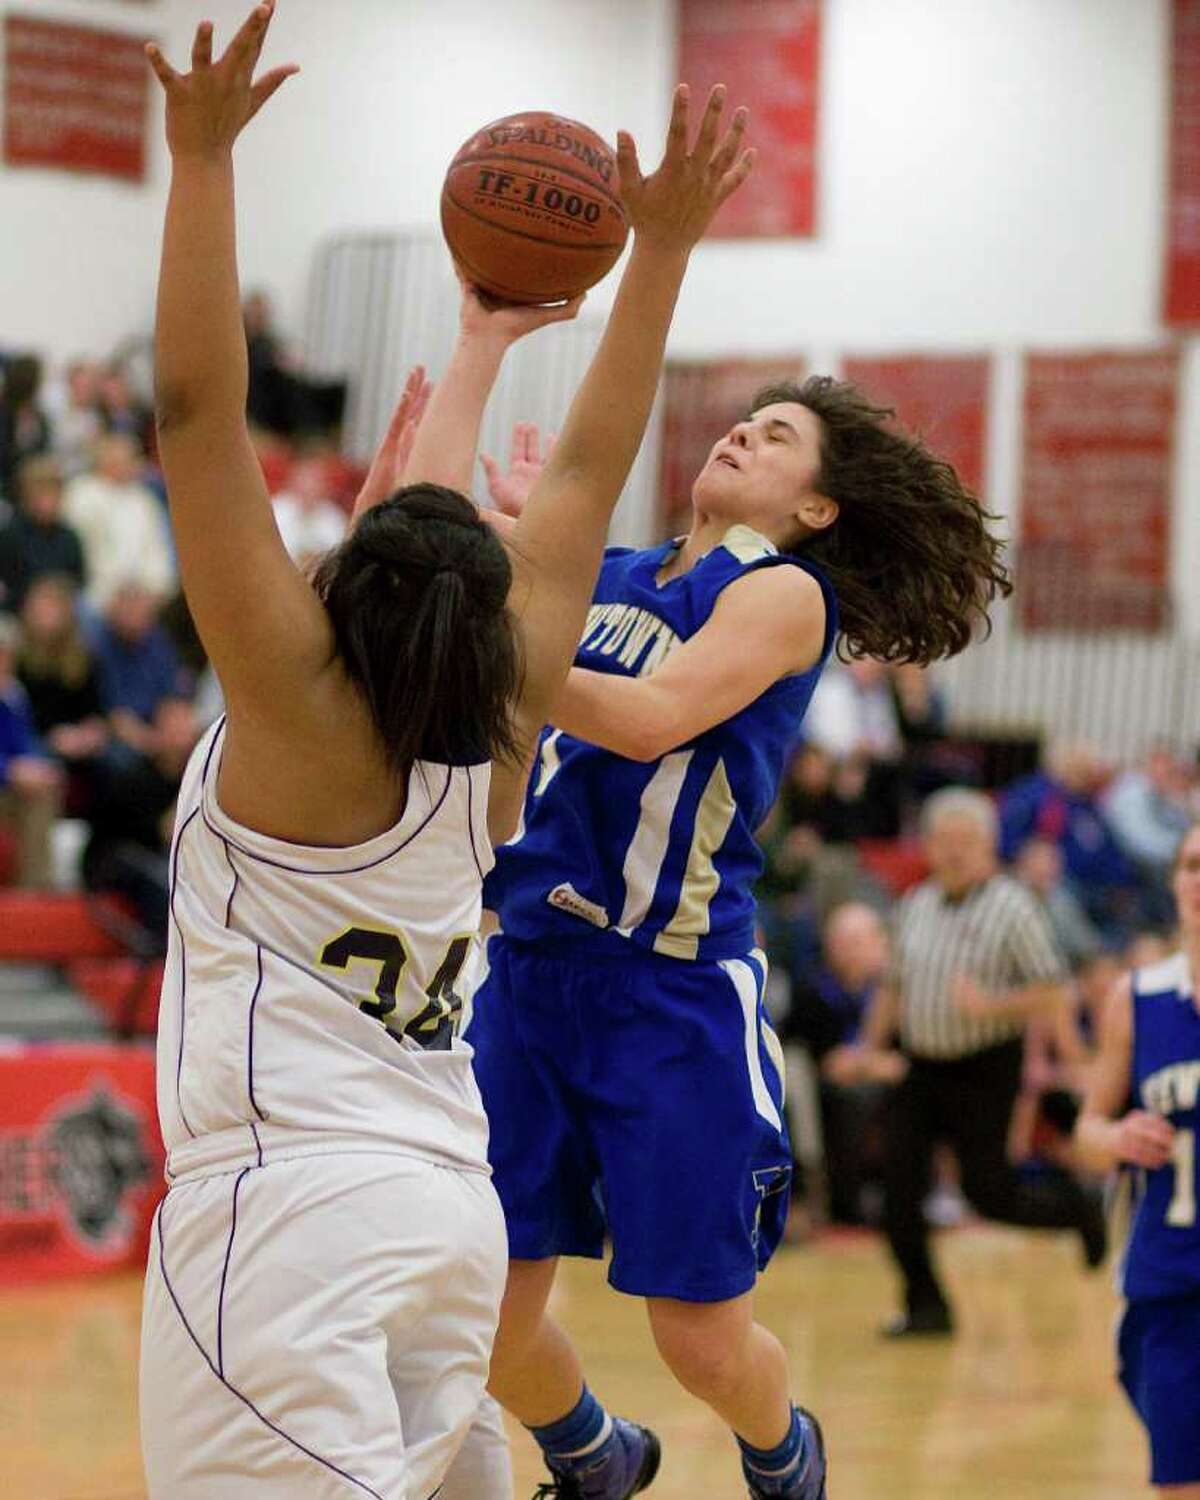 Newtown's Riley Wurtz goes up for a shot over Lauralton Hall's Olivia Levey during the SWC championship game Thursday night at Pomperaug High School.